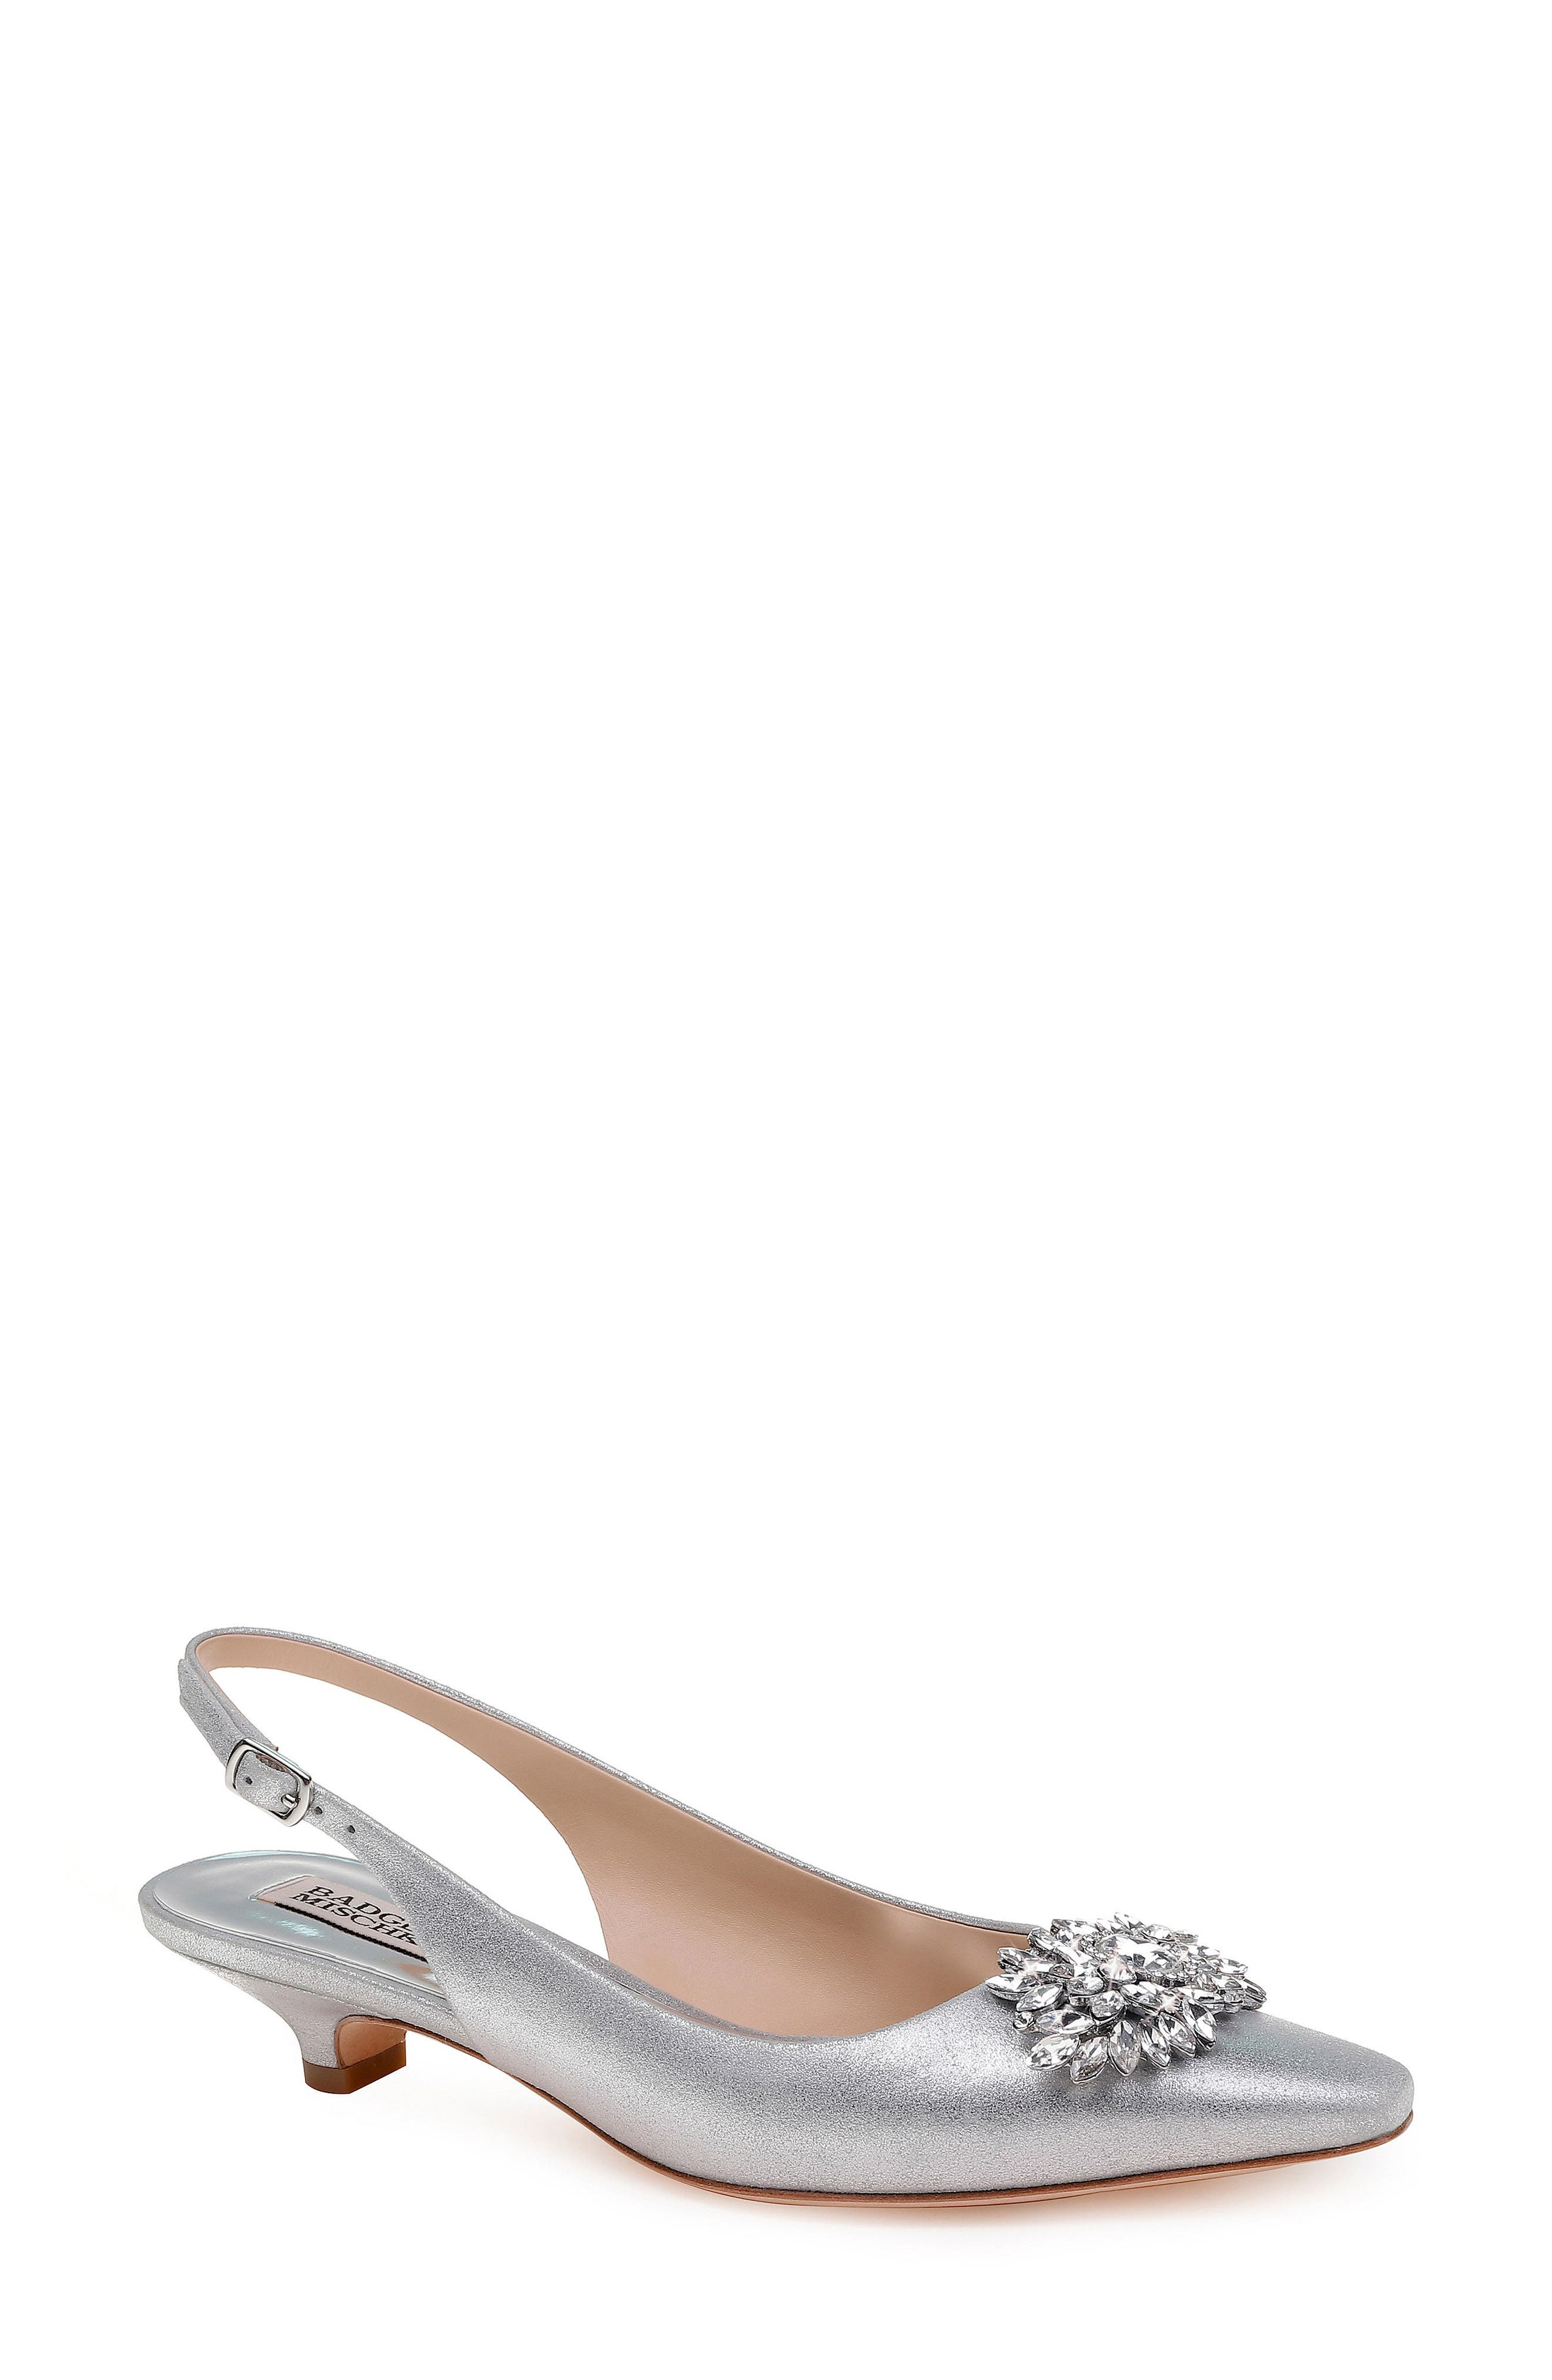 Page Slingback Pump,                             Main thumbnail 1, color,                             Silver Metallic Suede